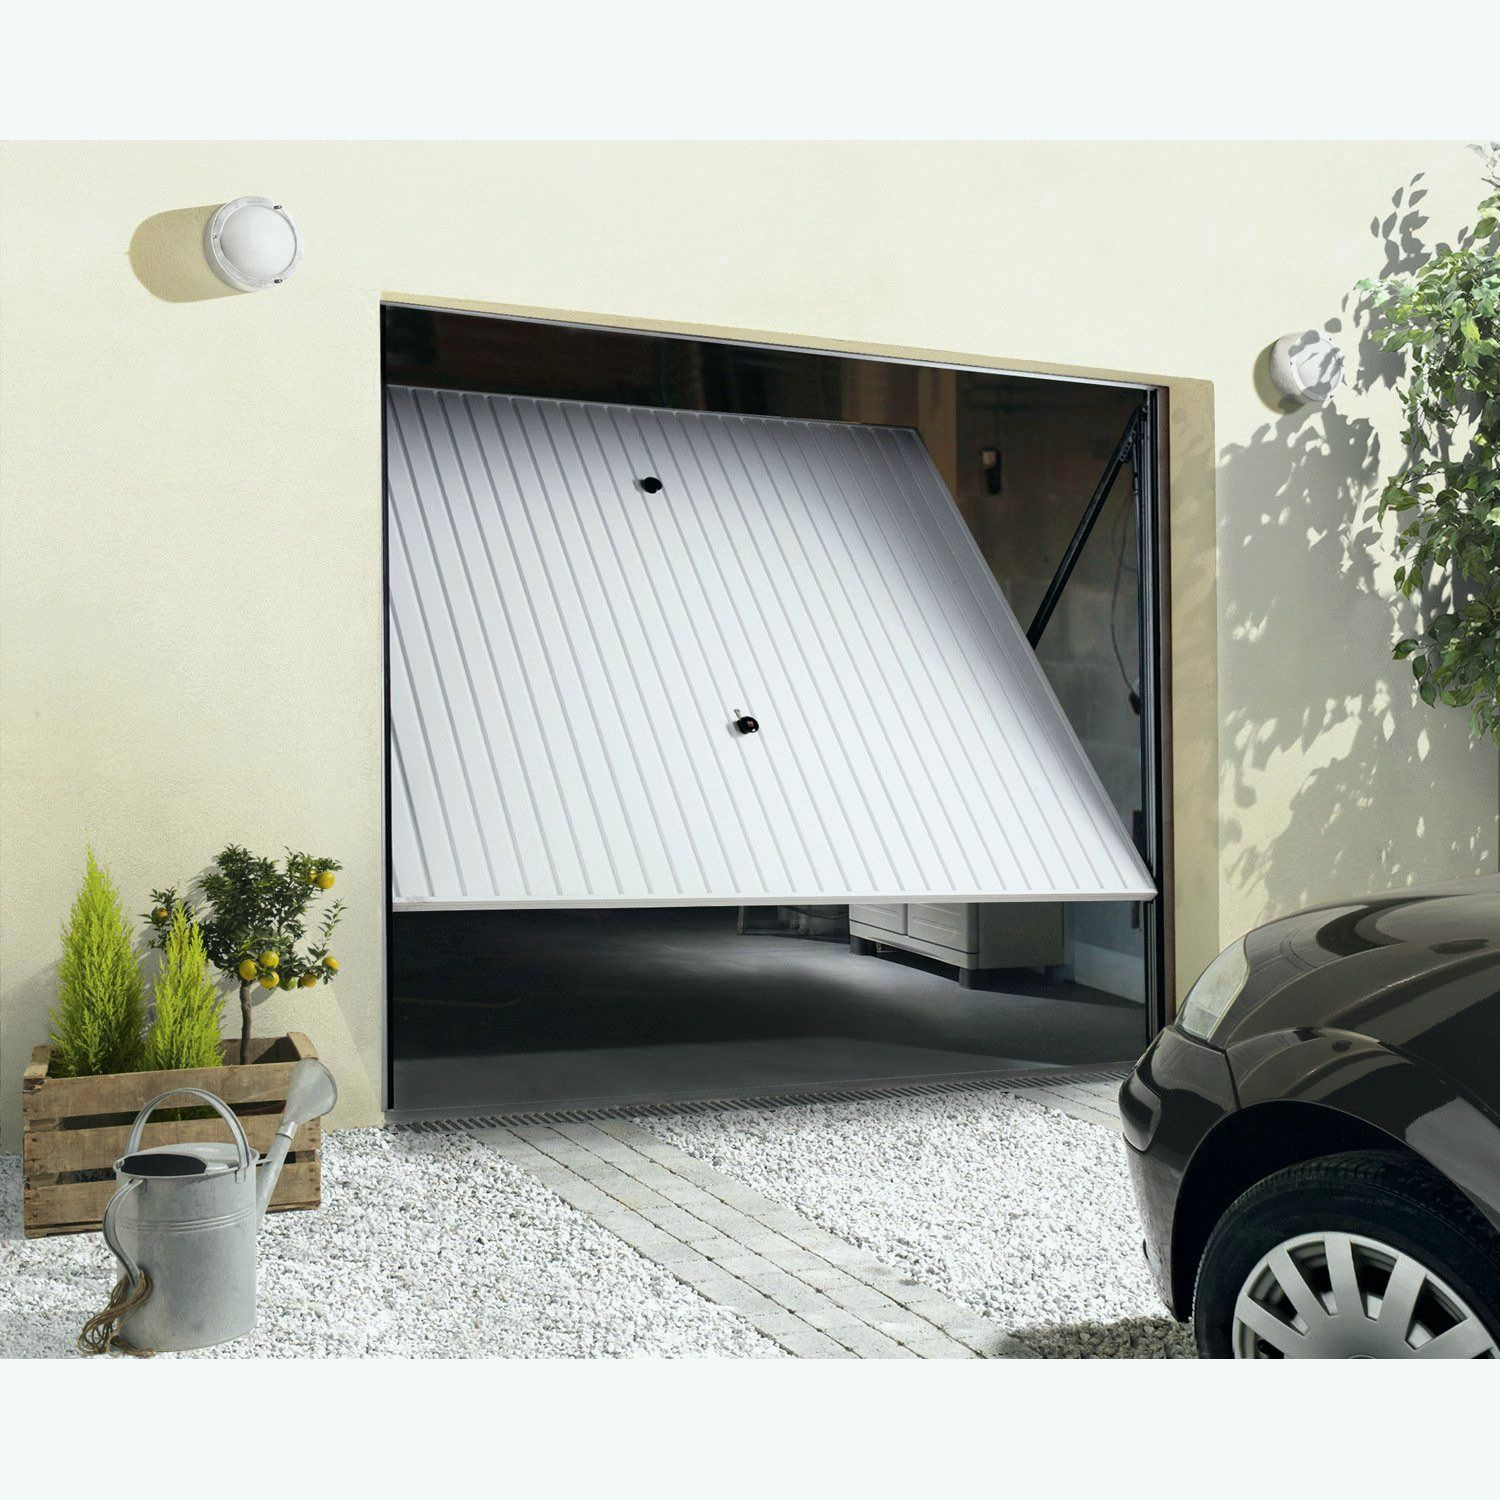 Beautiful Porte De Garage Enroulable Sur Mesure Leroy Merlin Interior Design Bedroom Bedroom Interior Interior Design